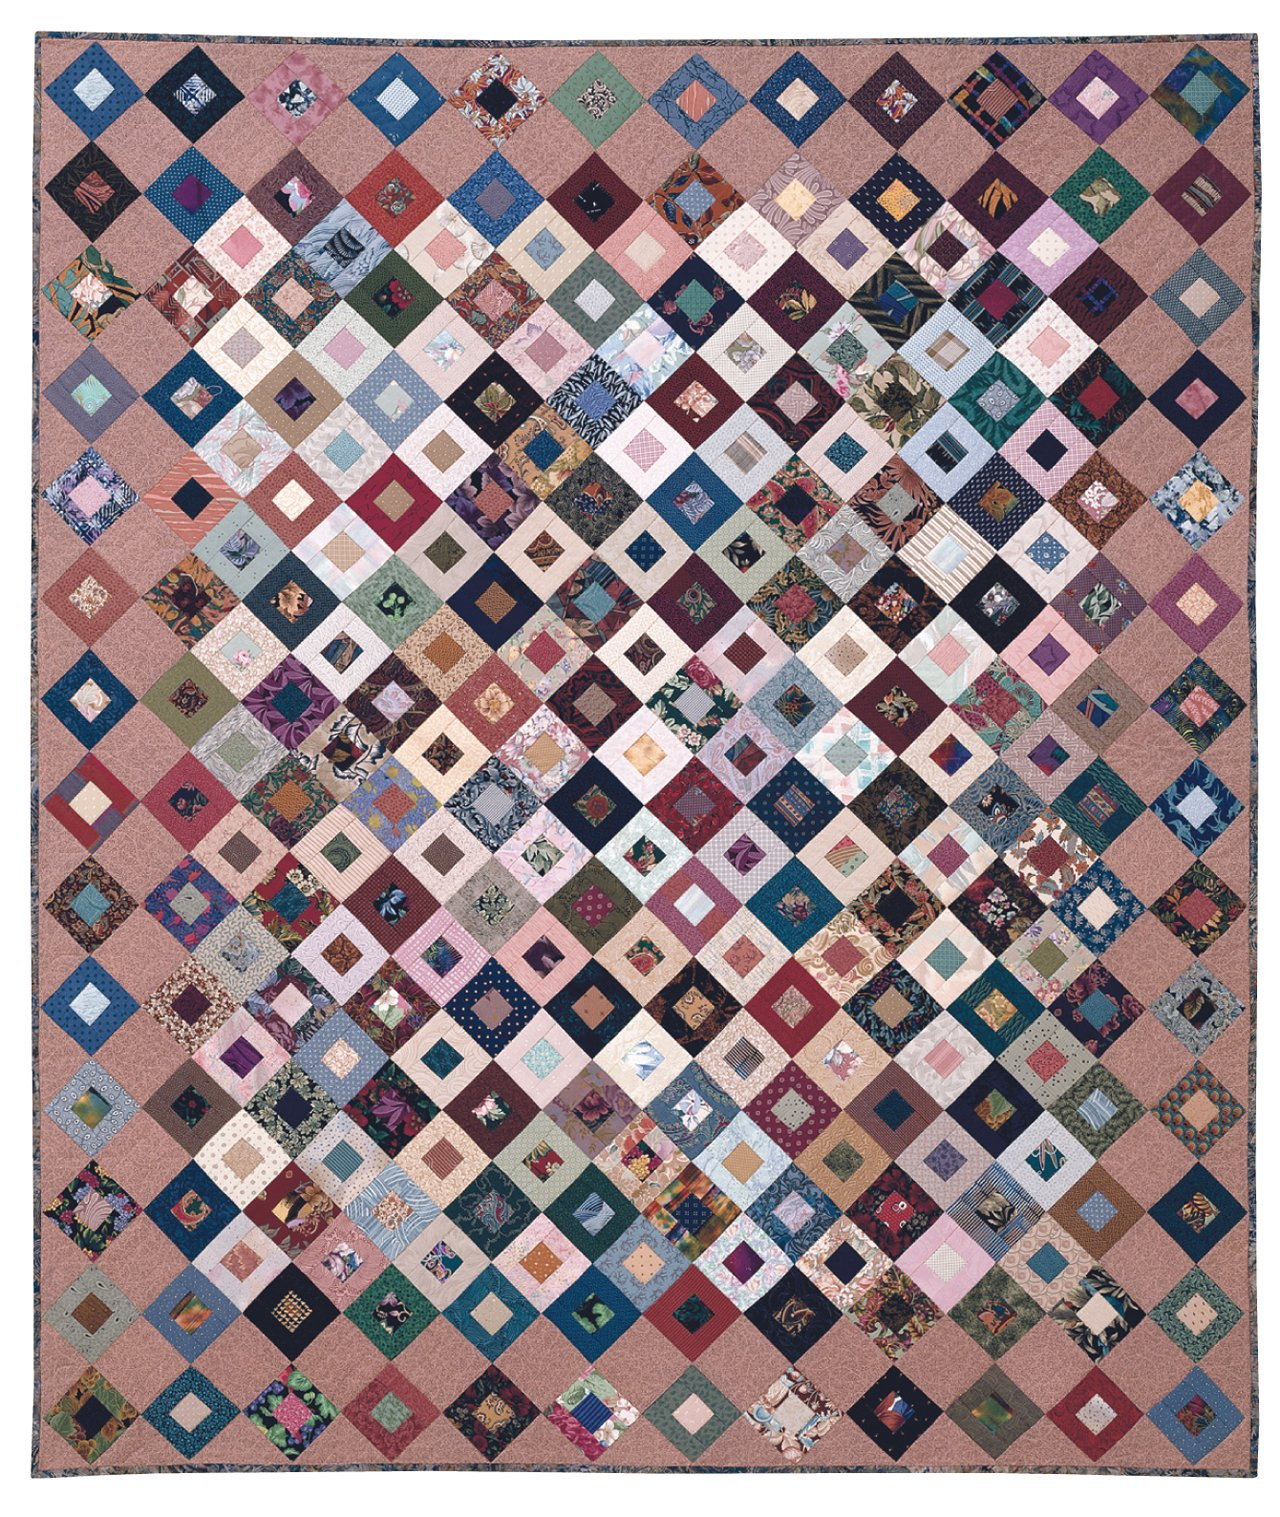 Easy Quilts for Beginners and Beyond: 14 Quilt Patterns from Quiltmaker Magazine by That Patchwork Place (Image #11)